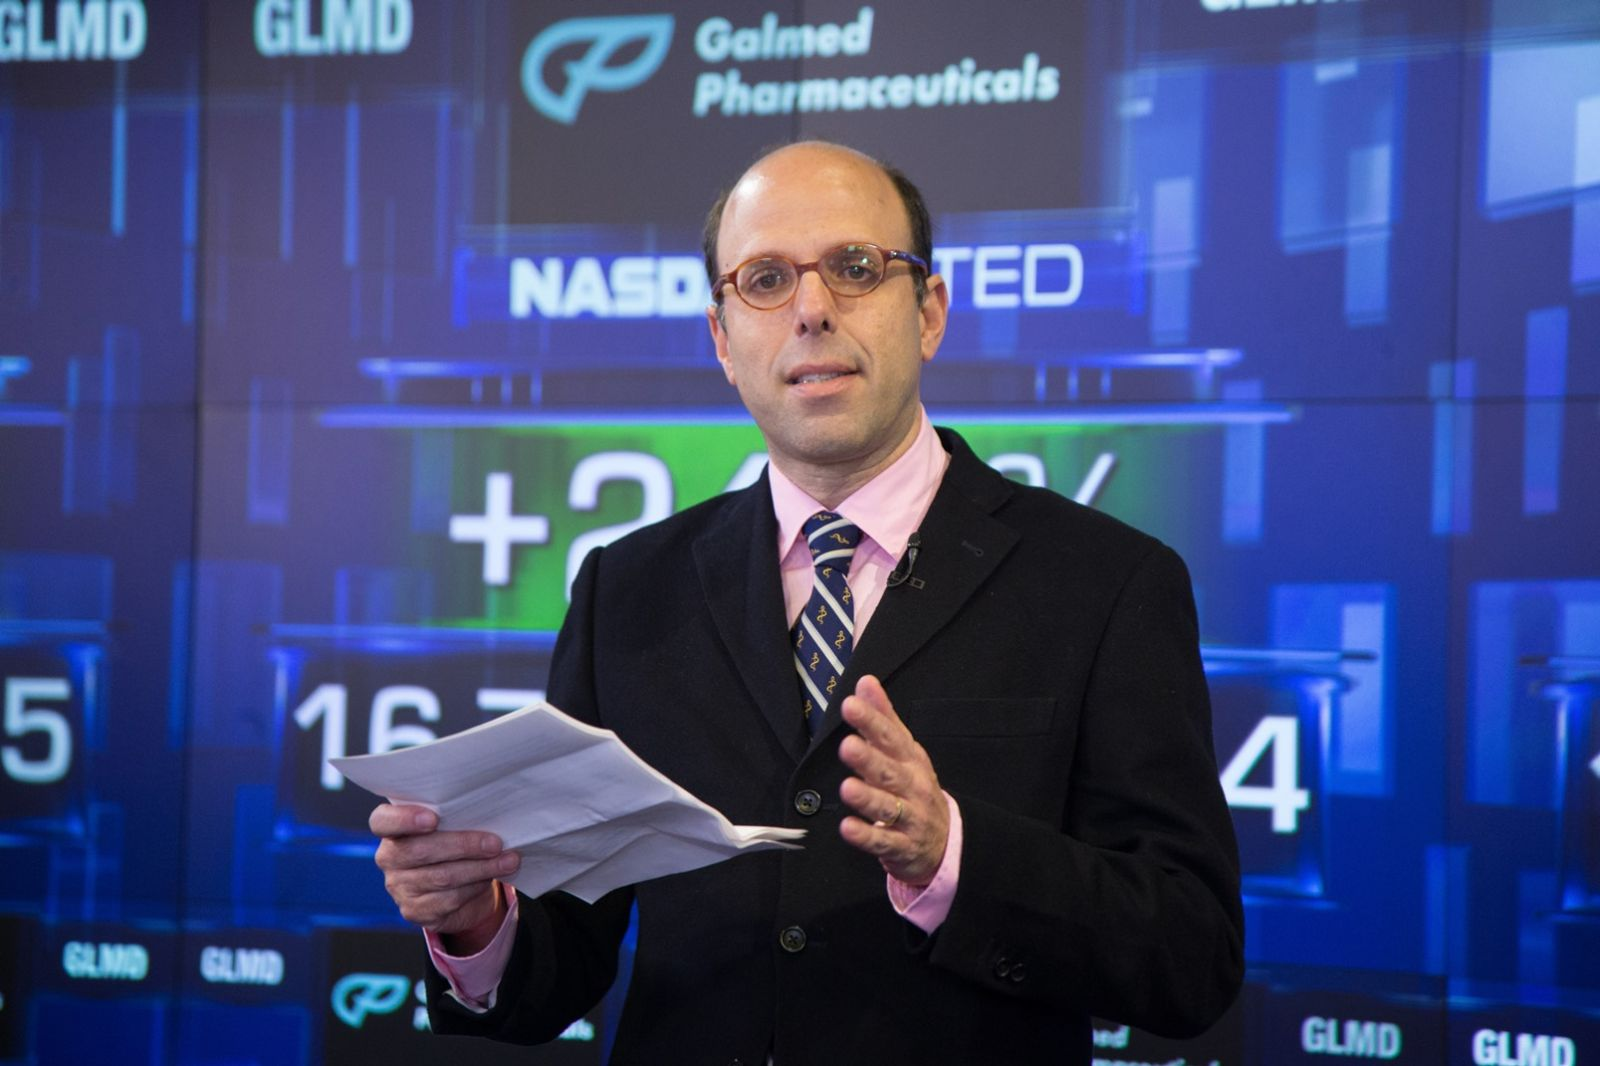 Galmed founder and CEO Allen Baharaff at NASDAQ on the day Galmed went public. Photo courtesy of NASDAQ